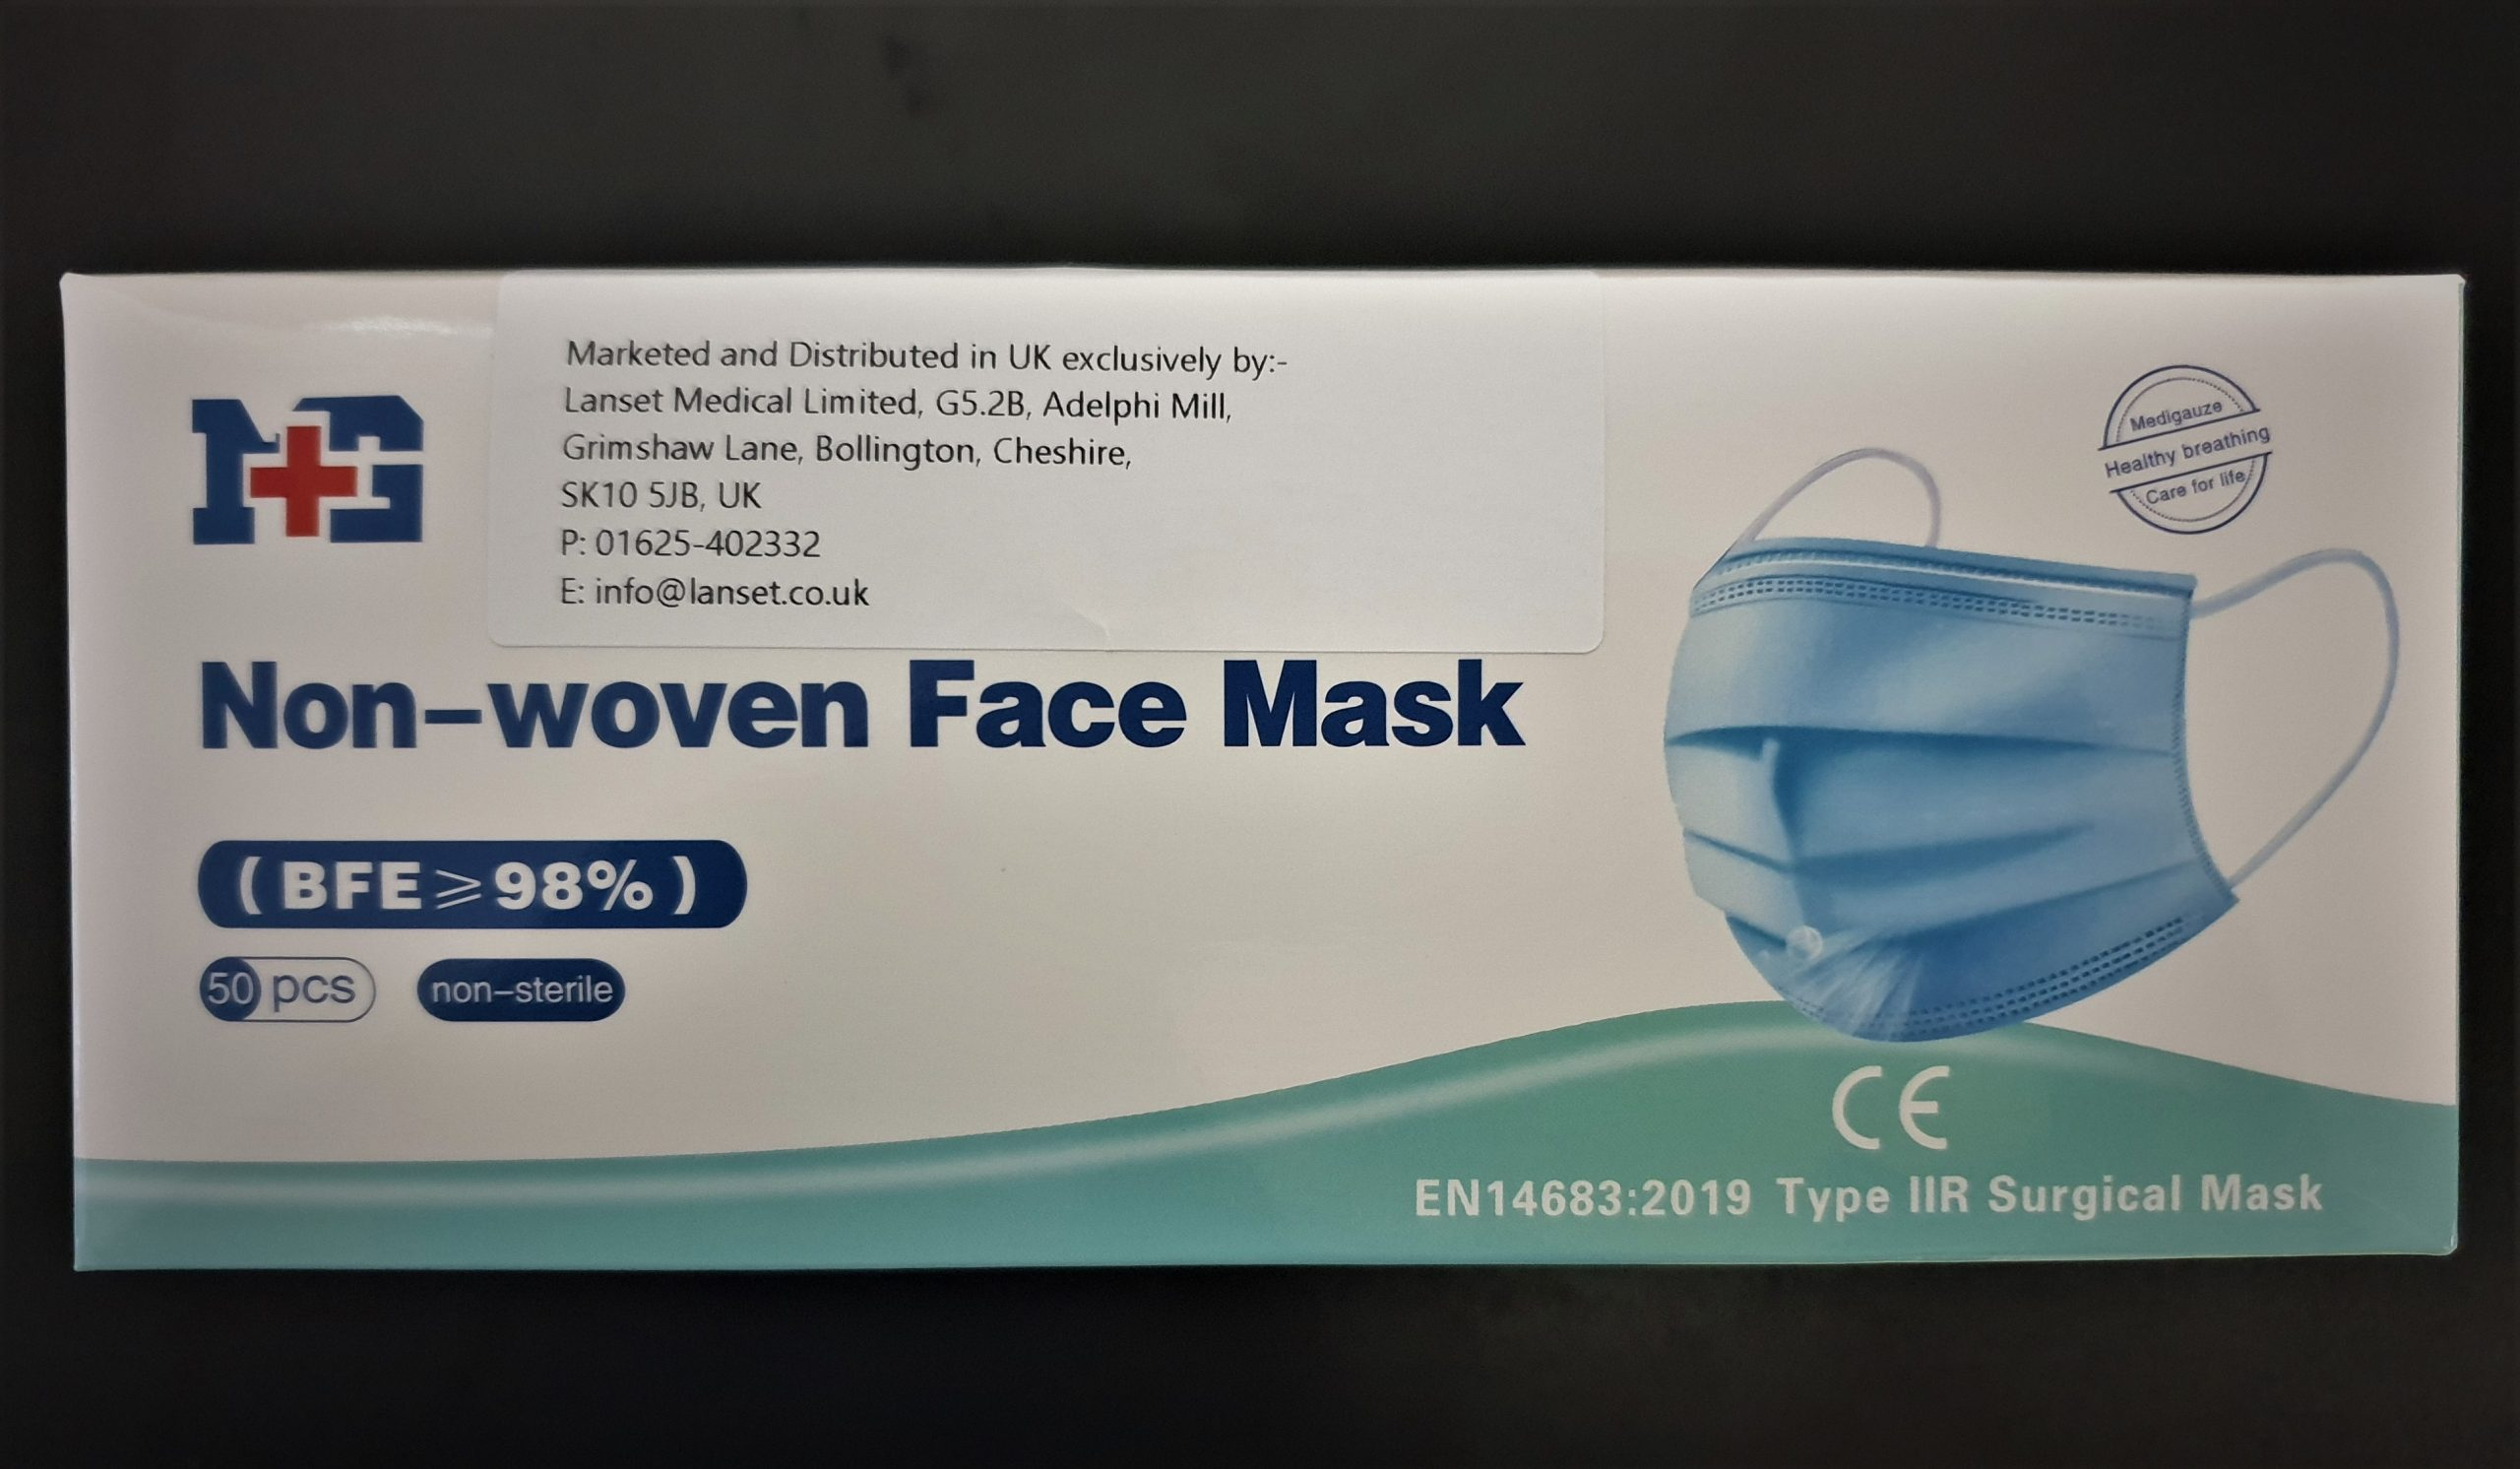 IIR 3-Ply Surgical Medical Face Masks